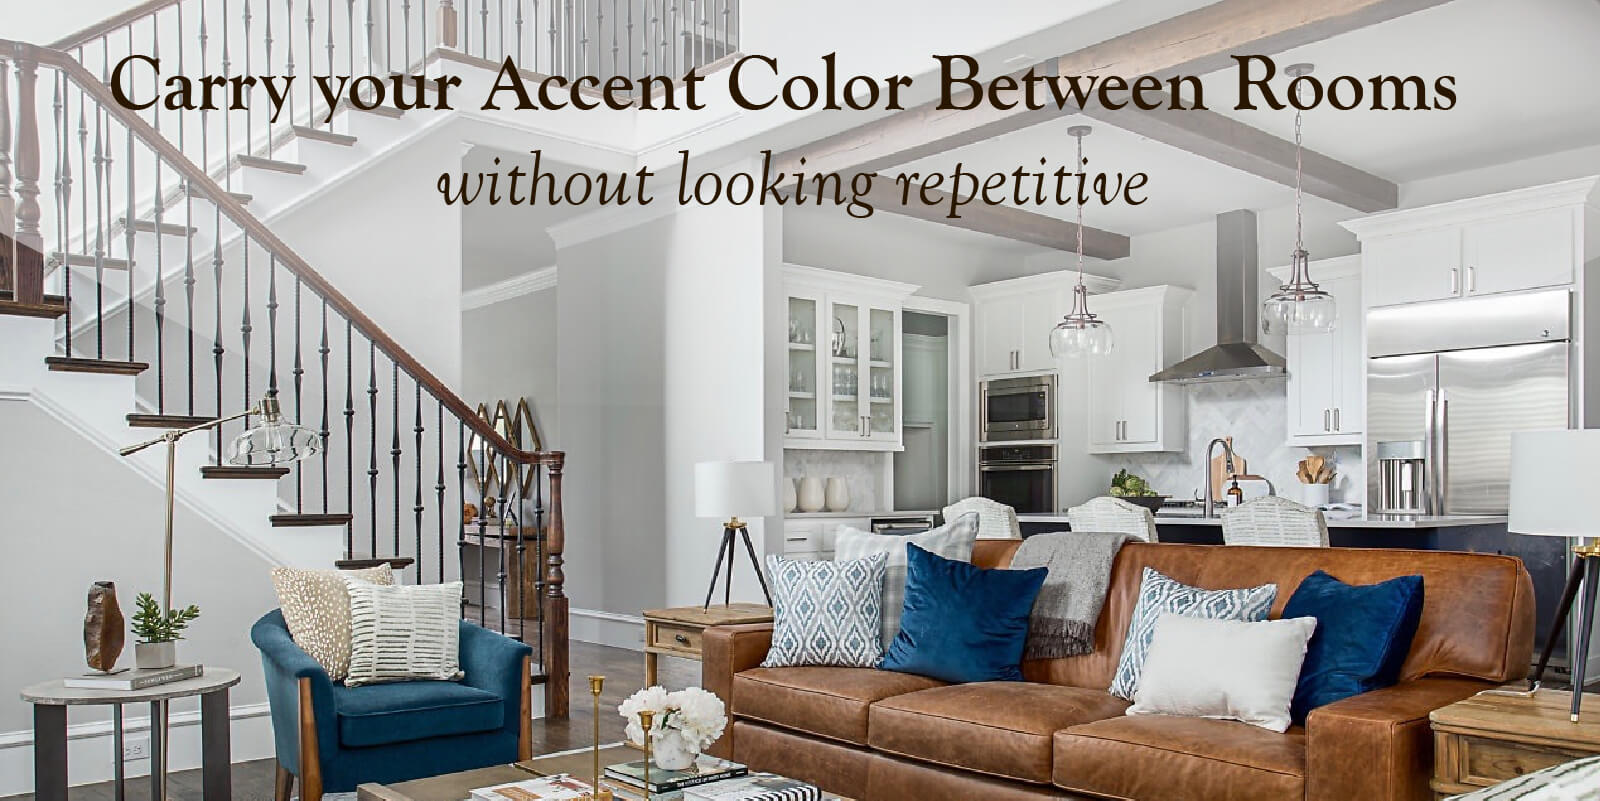 Carry your accent color between rooms without looking repetitive